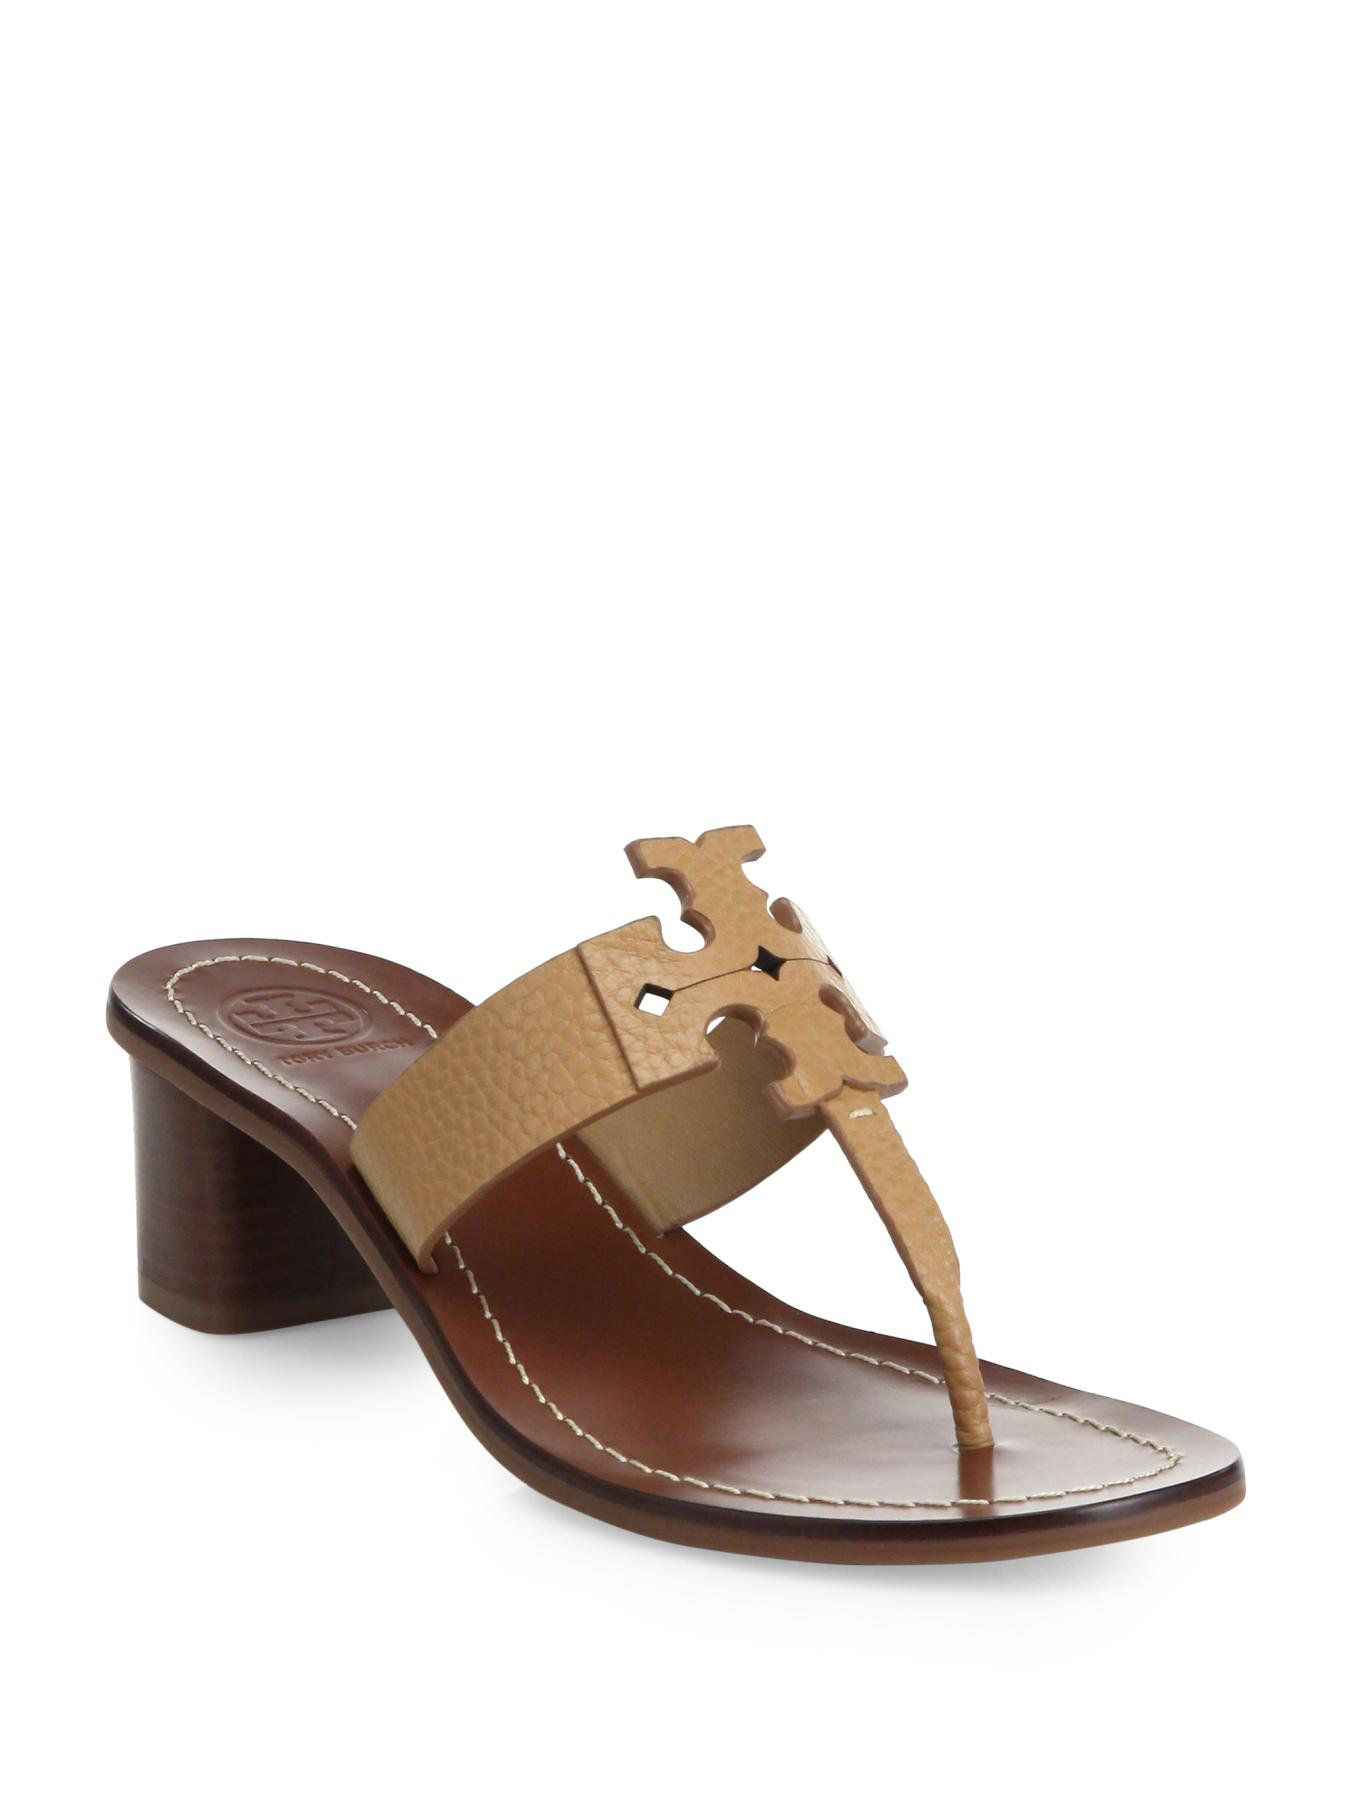 d9a4b9bbbc3f89 Tory Burch Moore Leather Thong Sandals in Brown (tan)